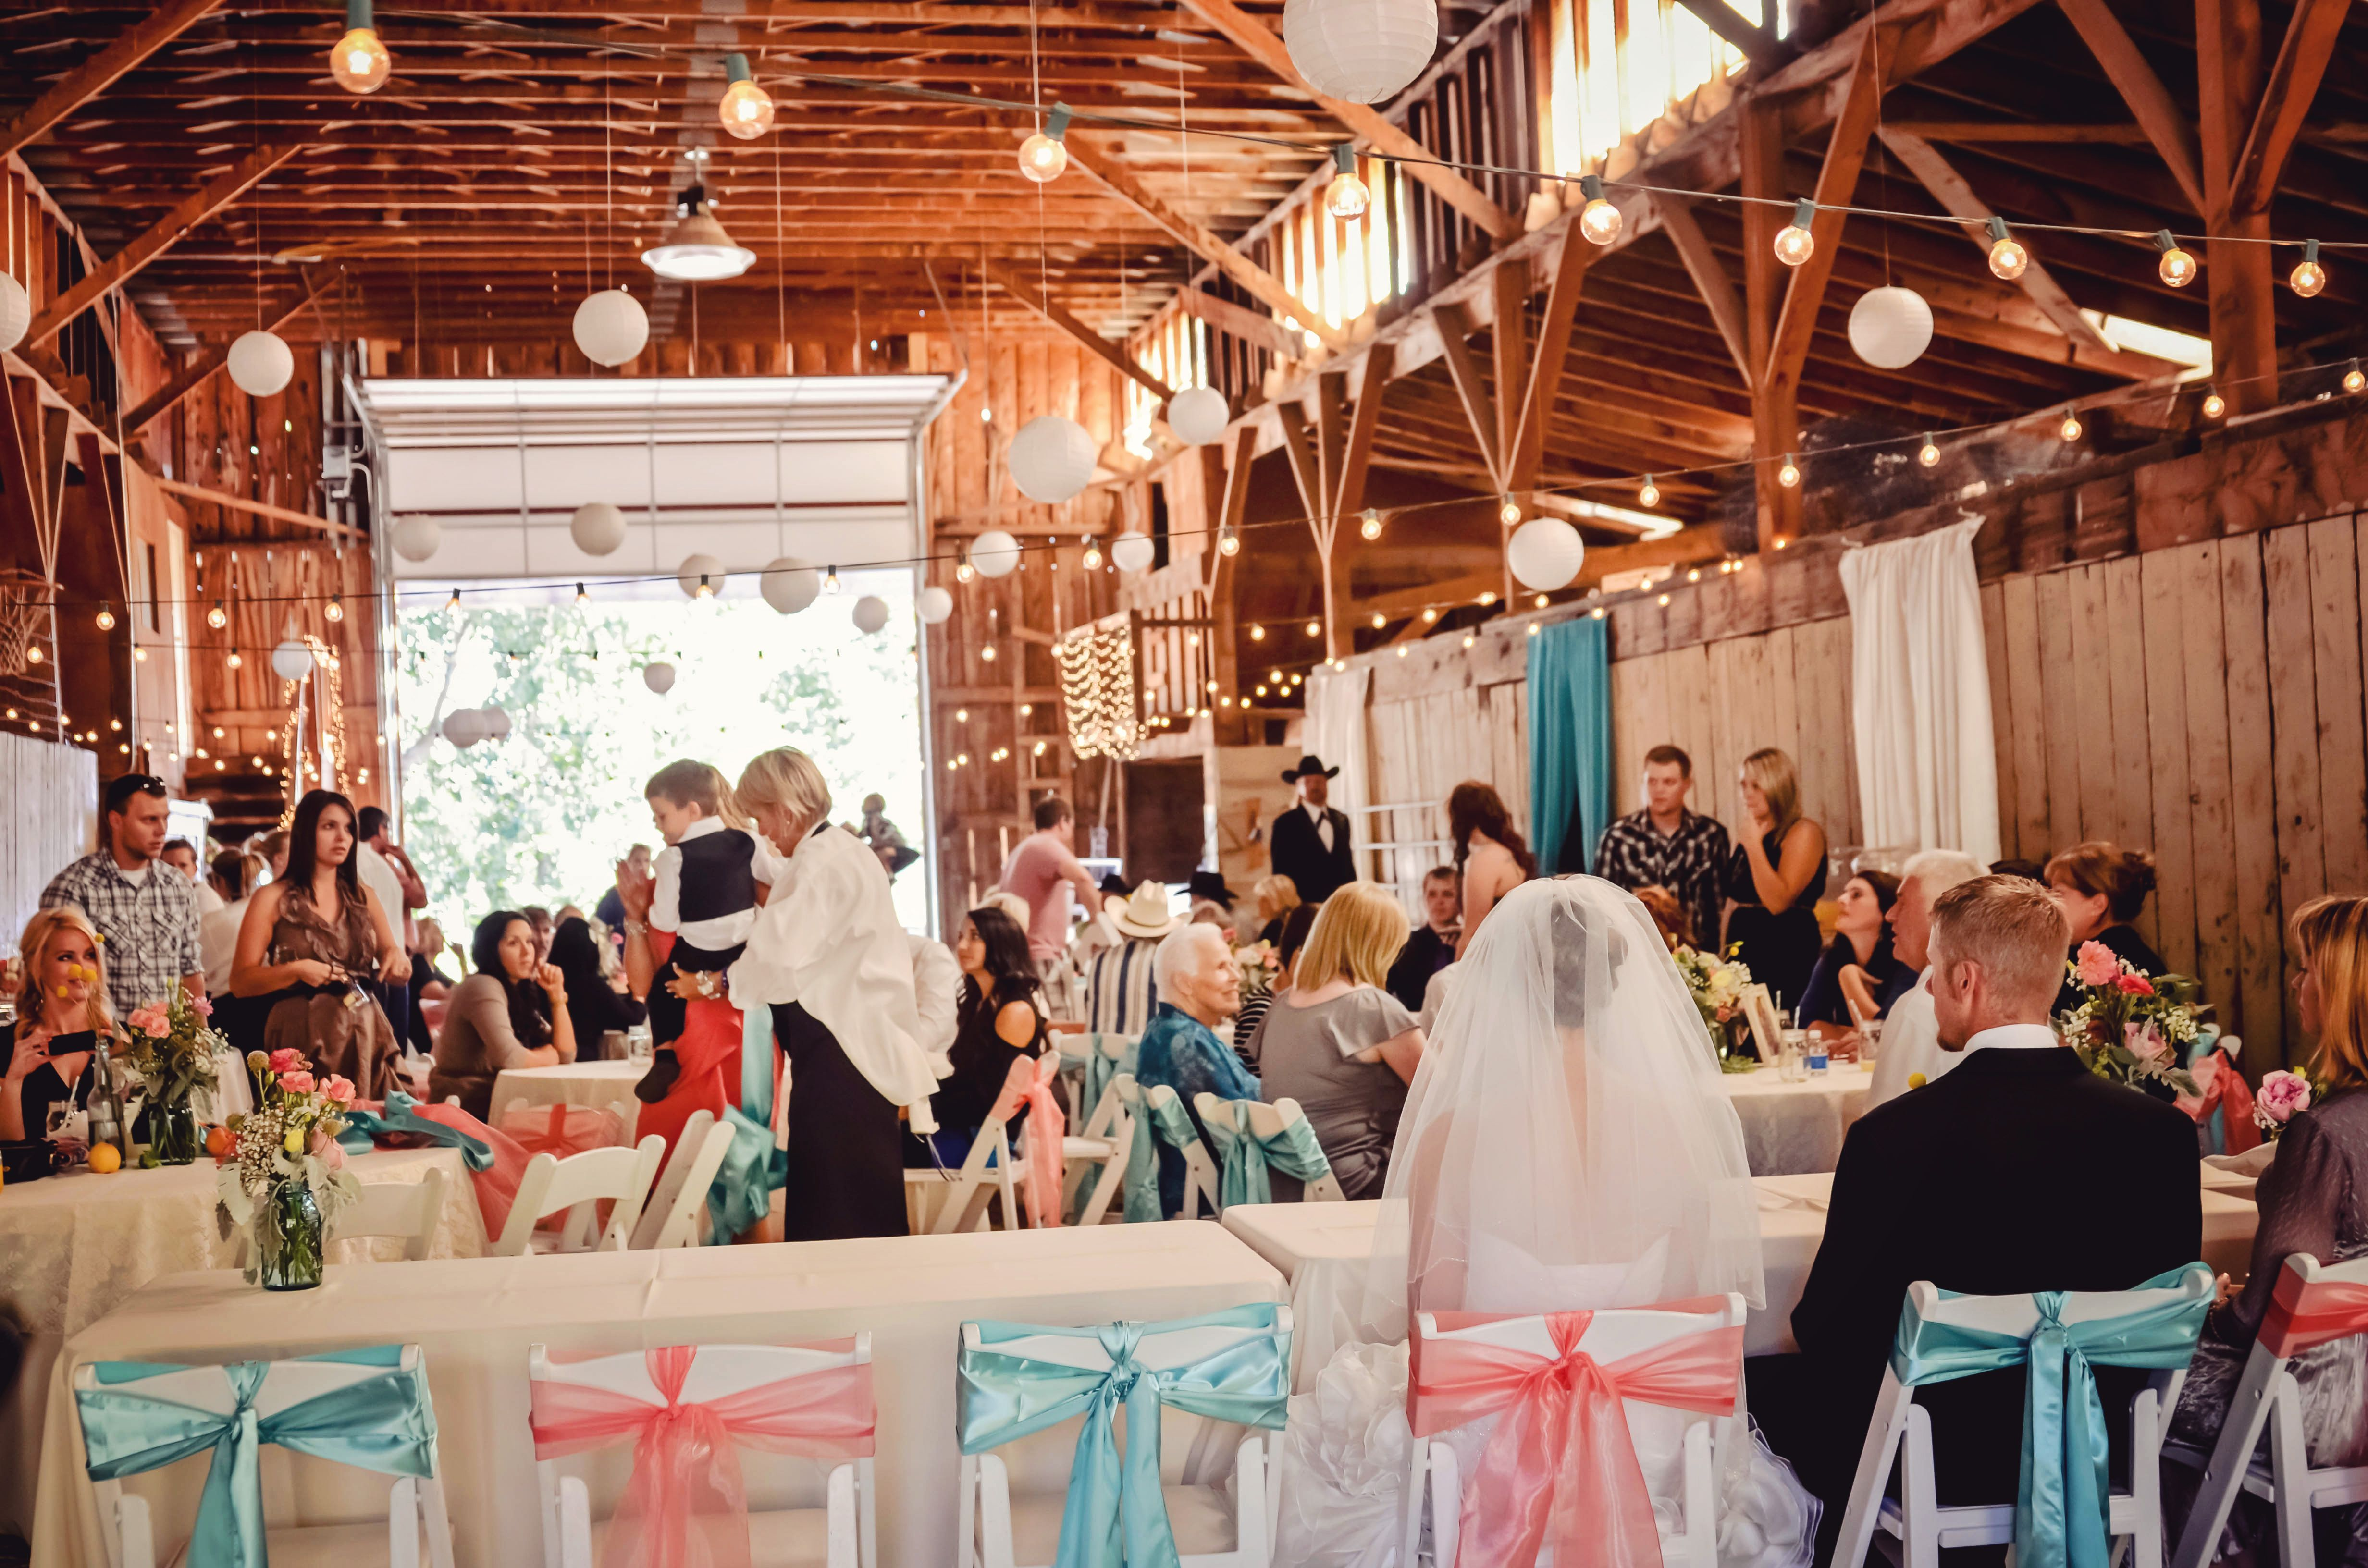 Kelley Creek Farm In Huntsville Utah Is The Perfect Wedding Venue Located Picturesque Ogden Valley